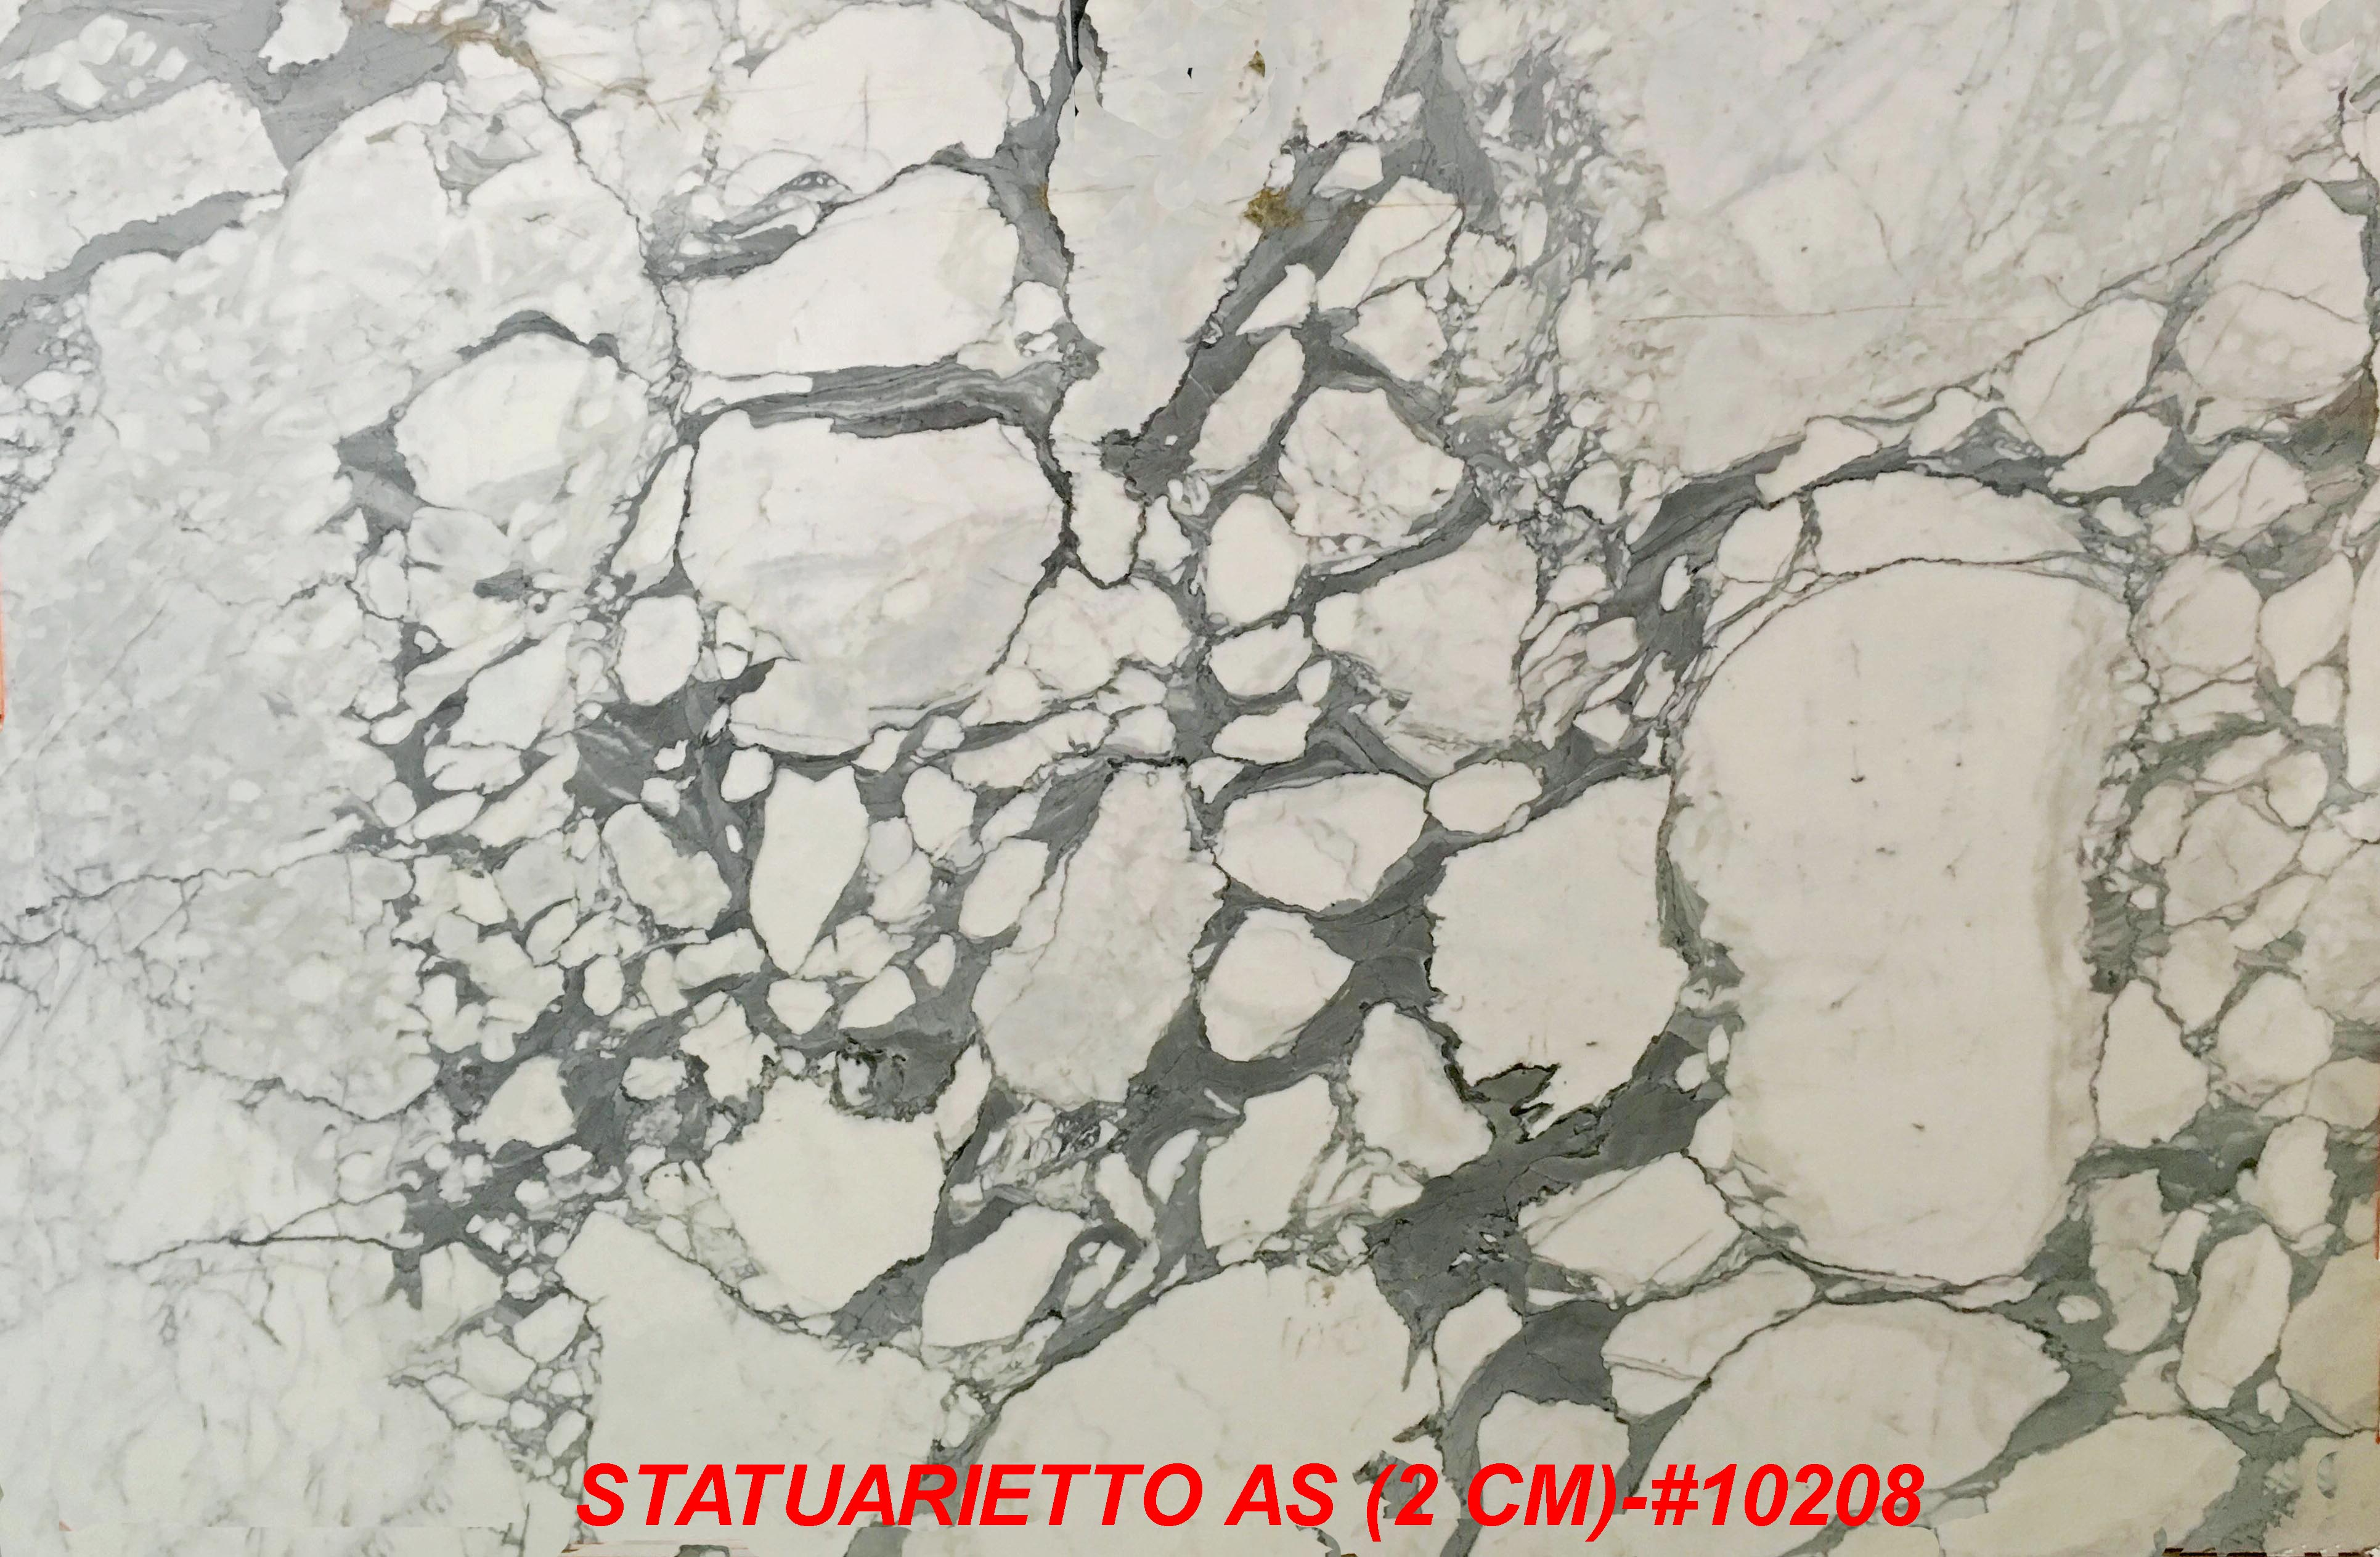 STATUARIETTO AS (2 CM)-#10208